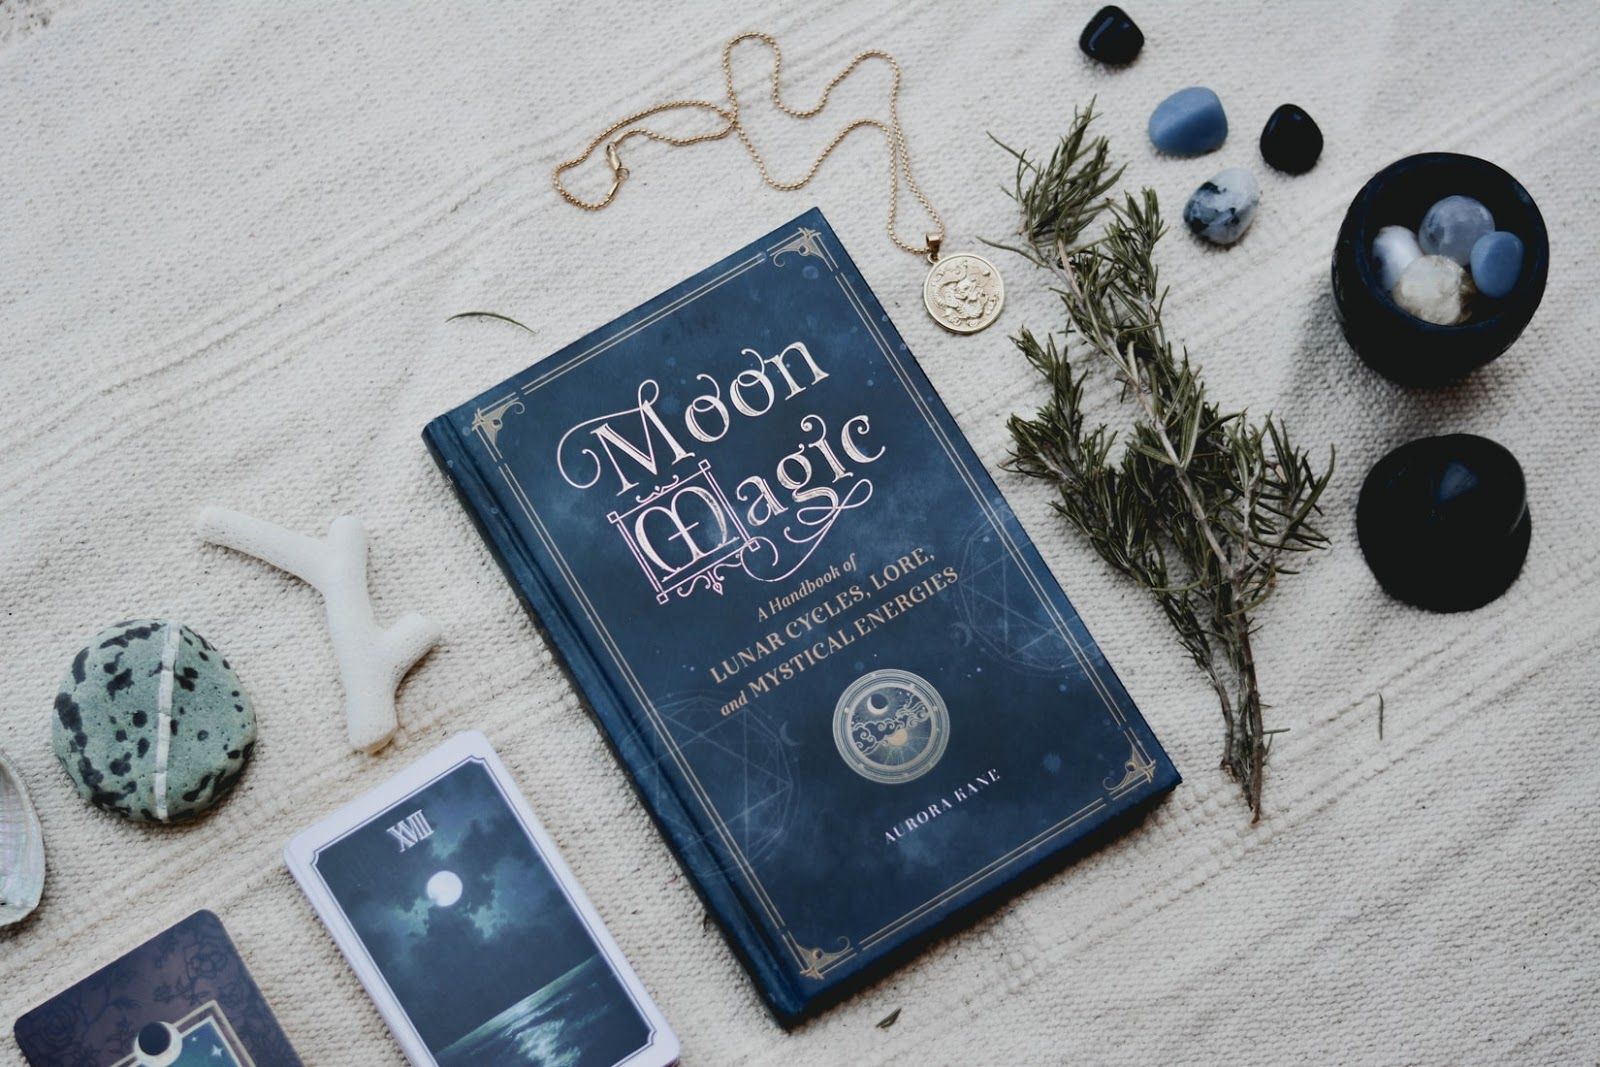 Moon phases witchcraft